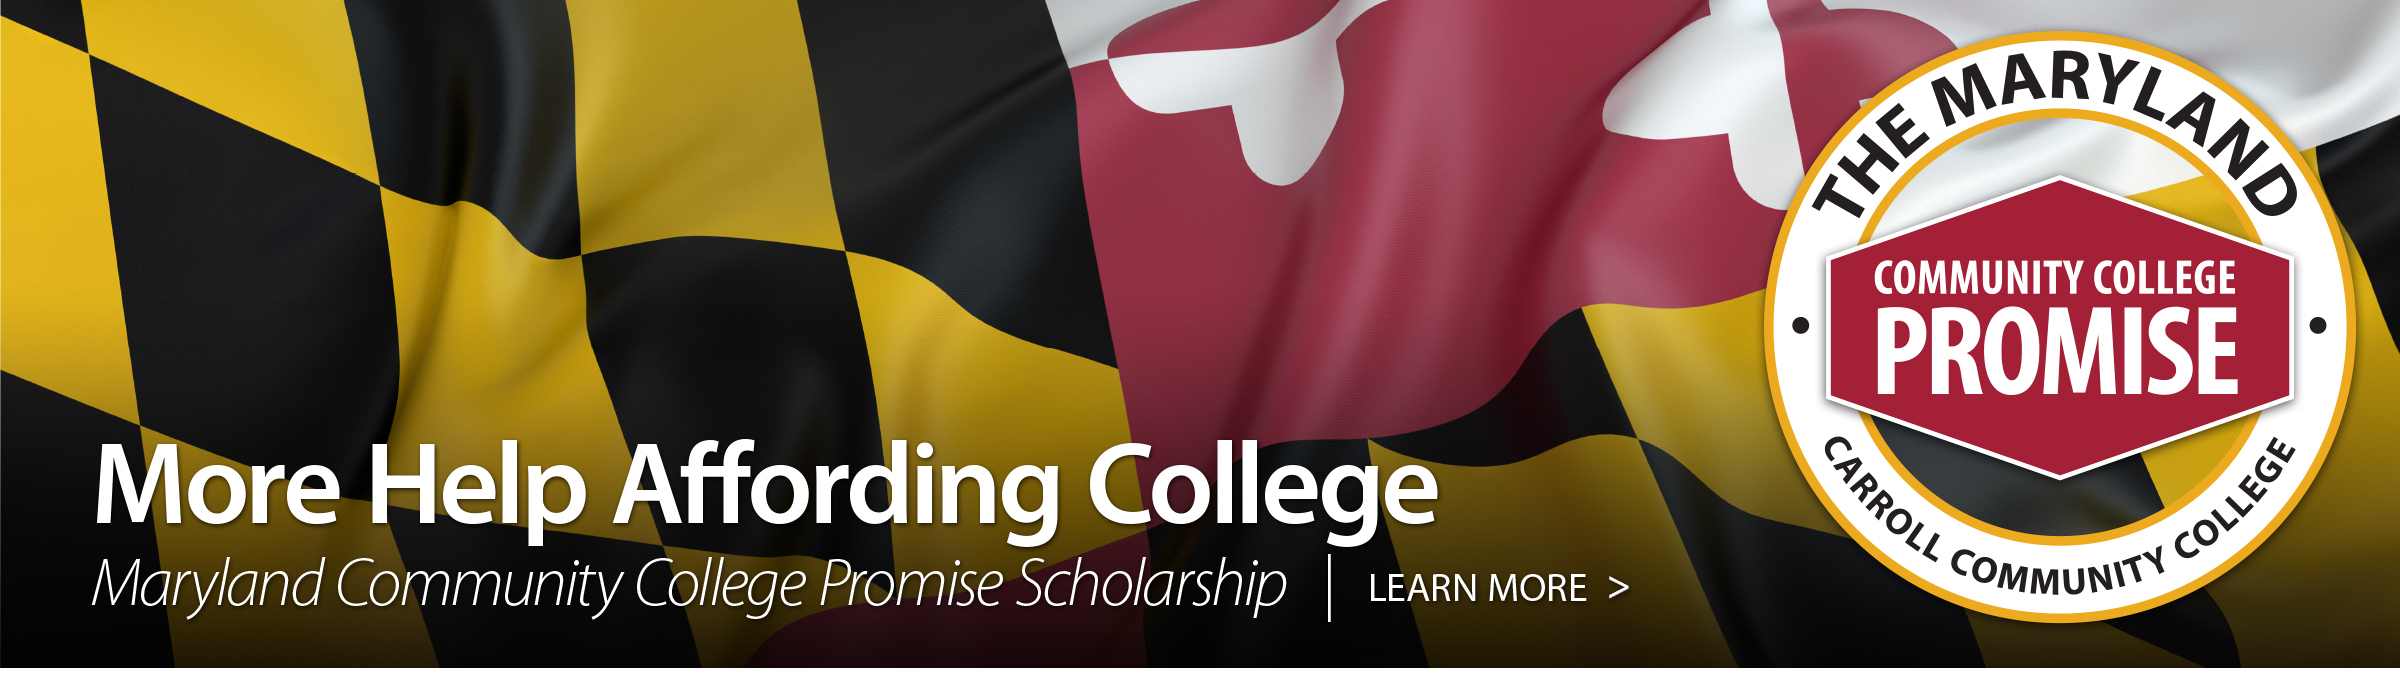 Need More Help Affording College? Need More Help Affording College?